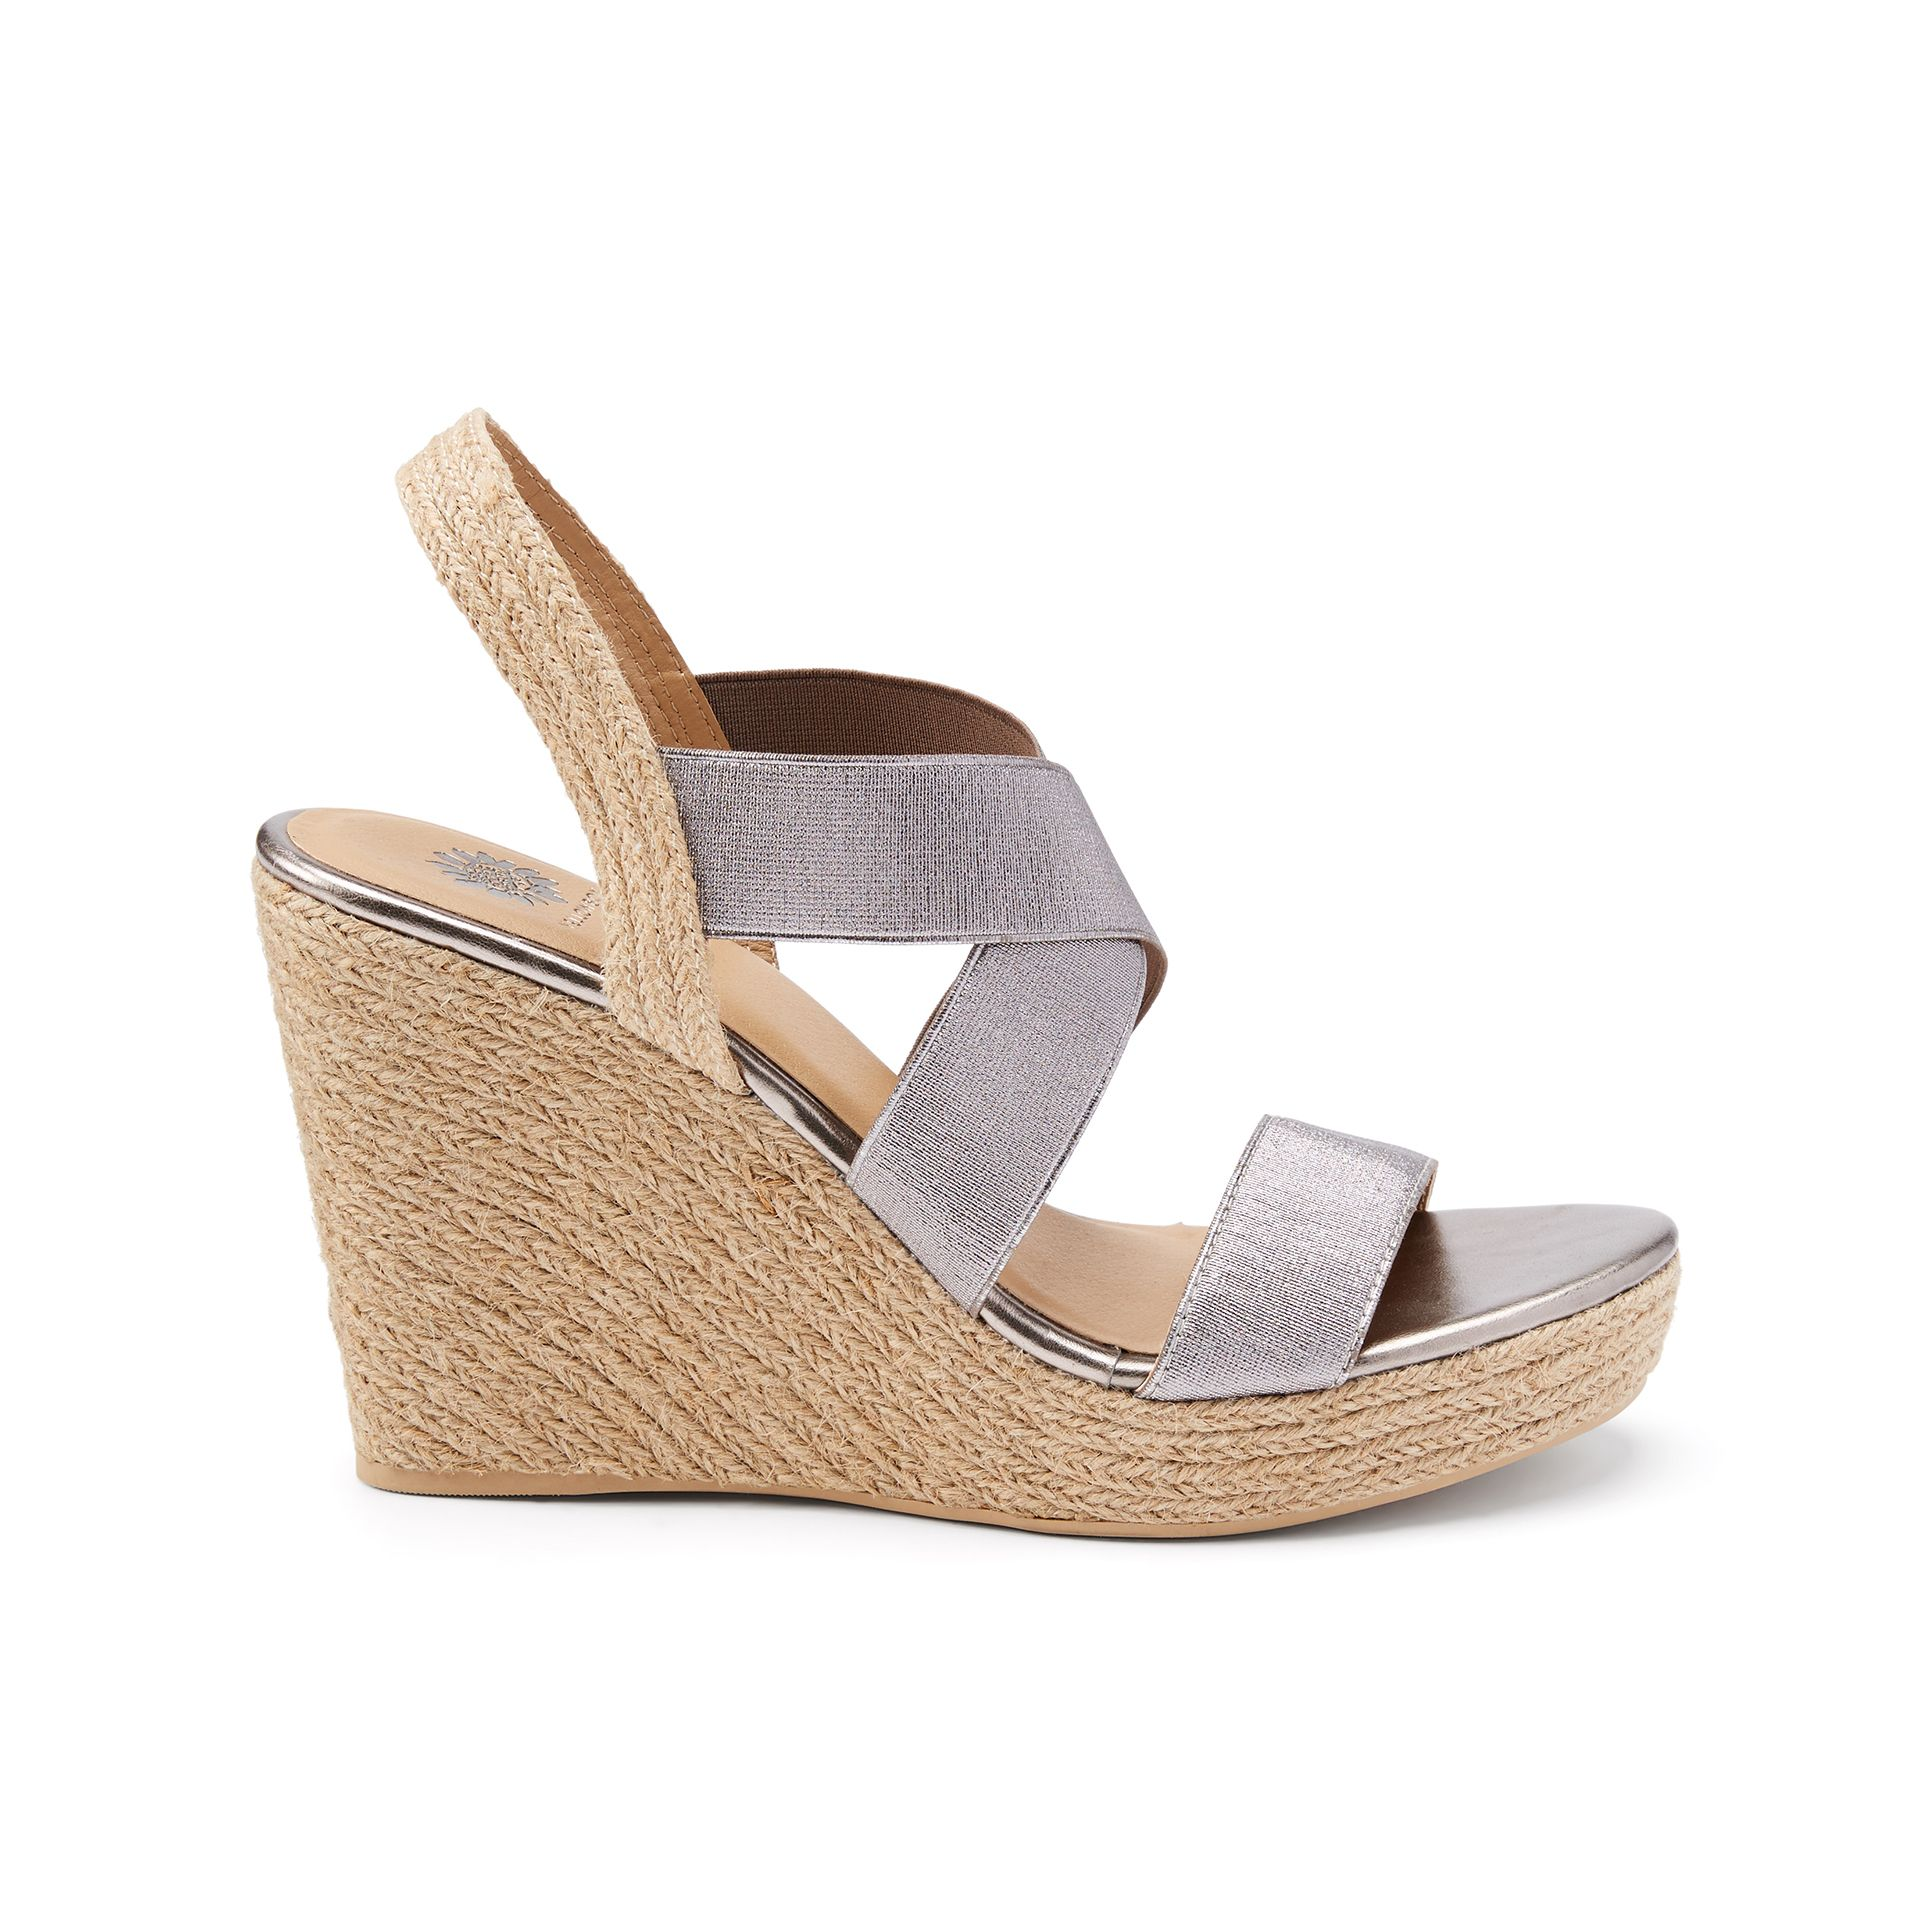 0810f25678 Introducing Stitch Fix Shoes: Espadrille Wedges | Stitch Fix Stylist ...